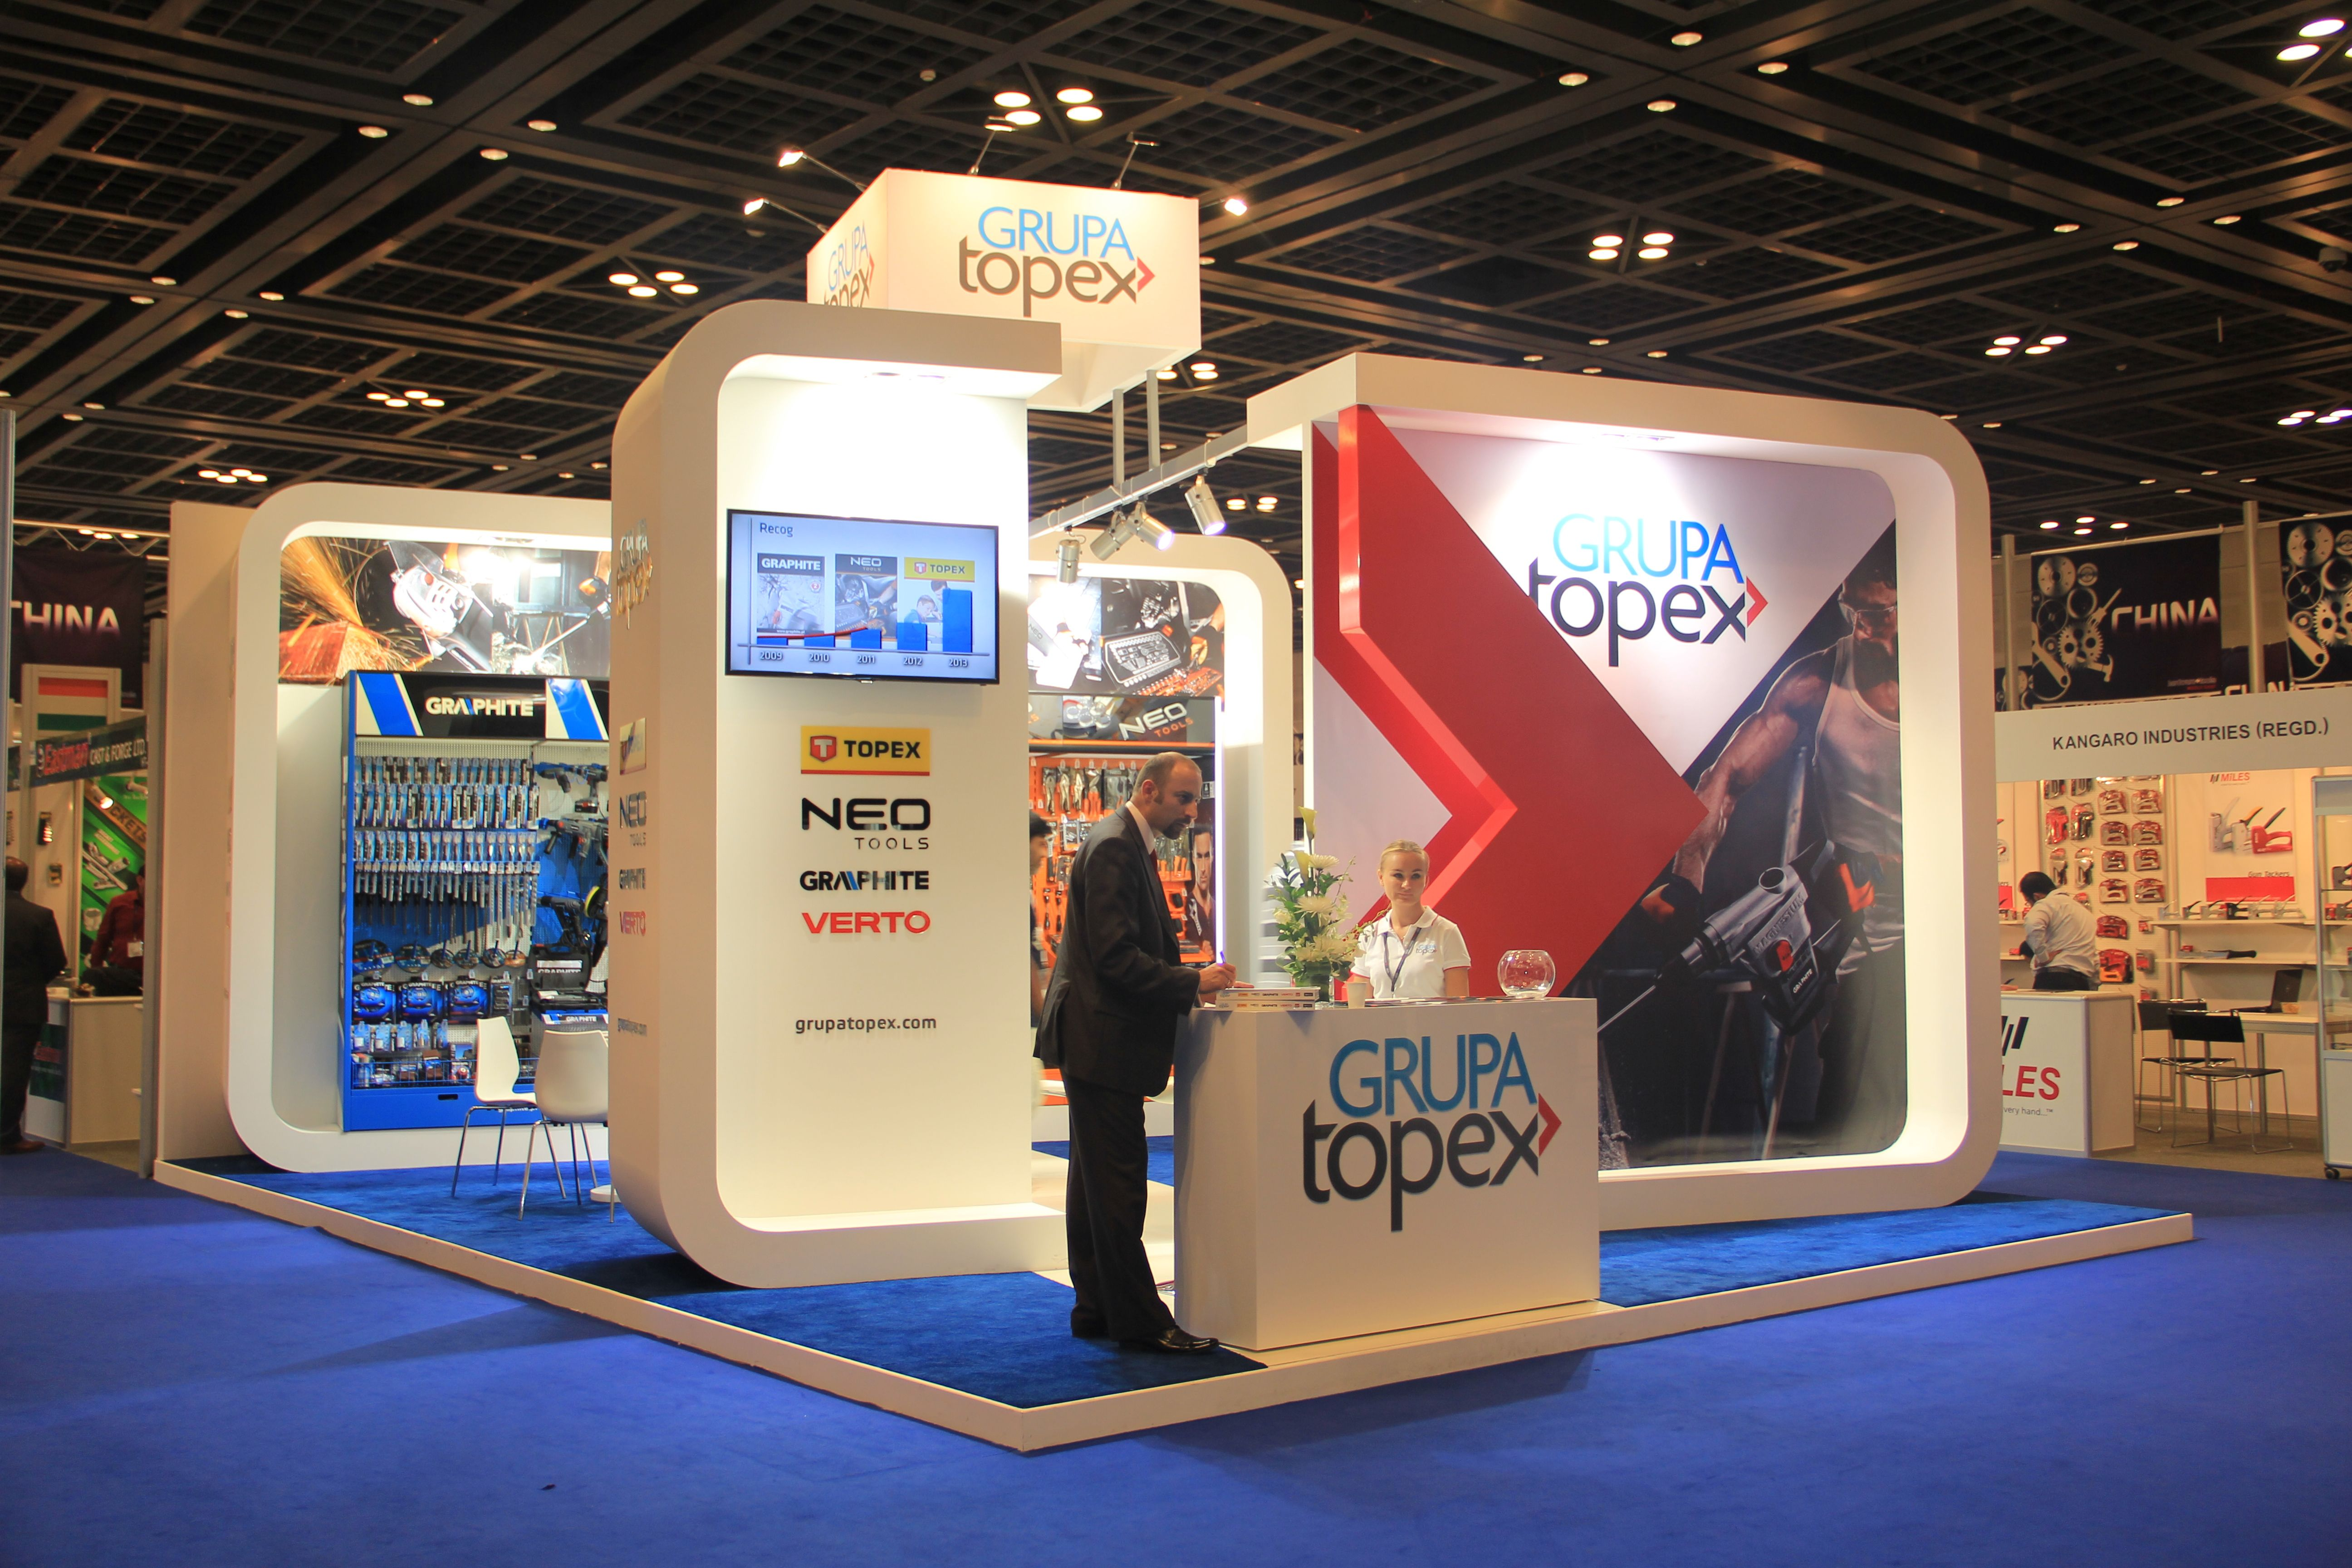 Exhibition Stand Design Tool : Grupa topex by van hagen middle east hardware and tools